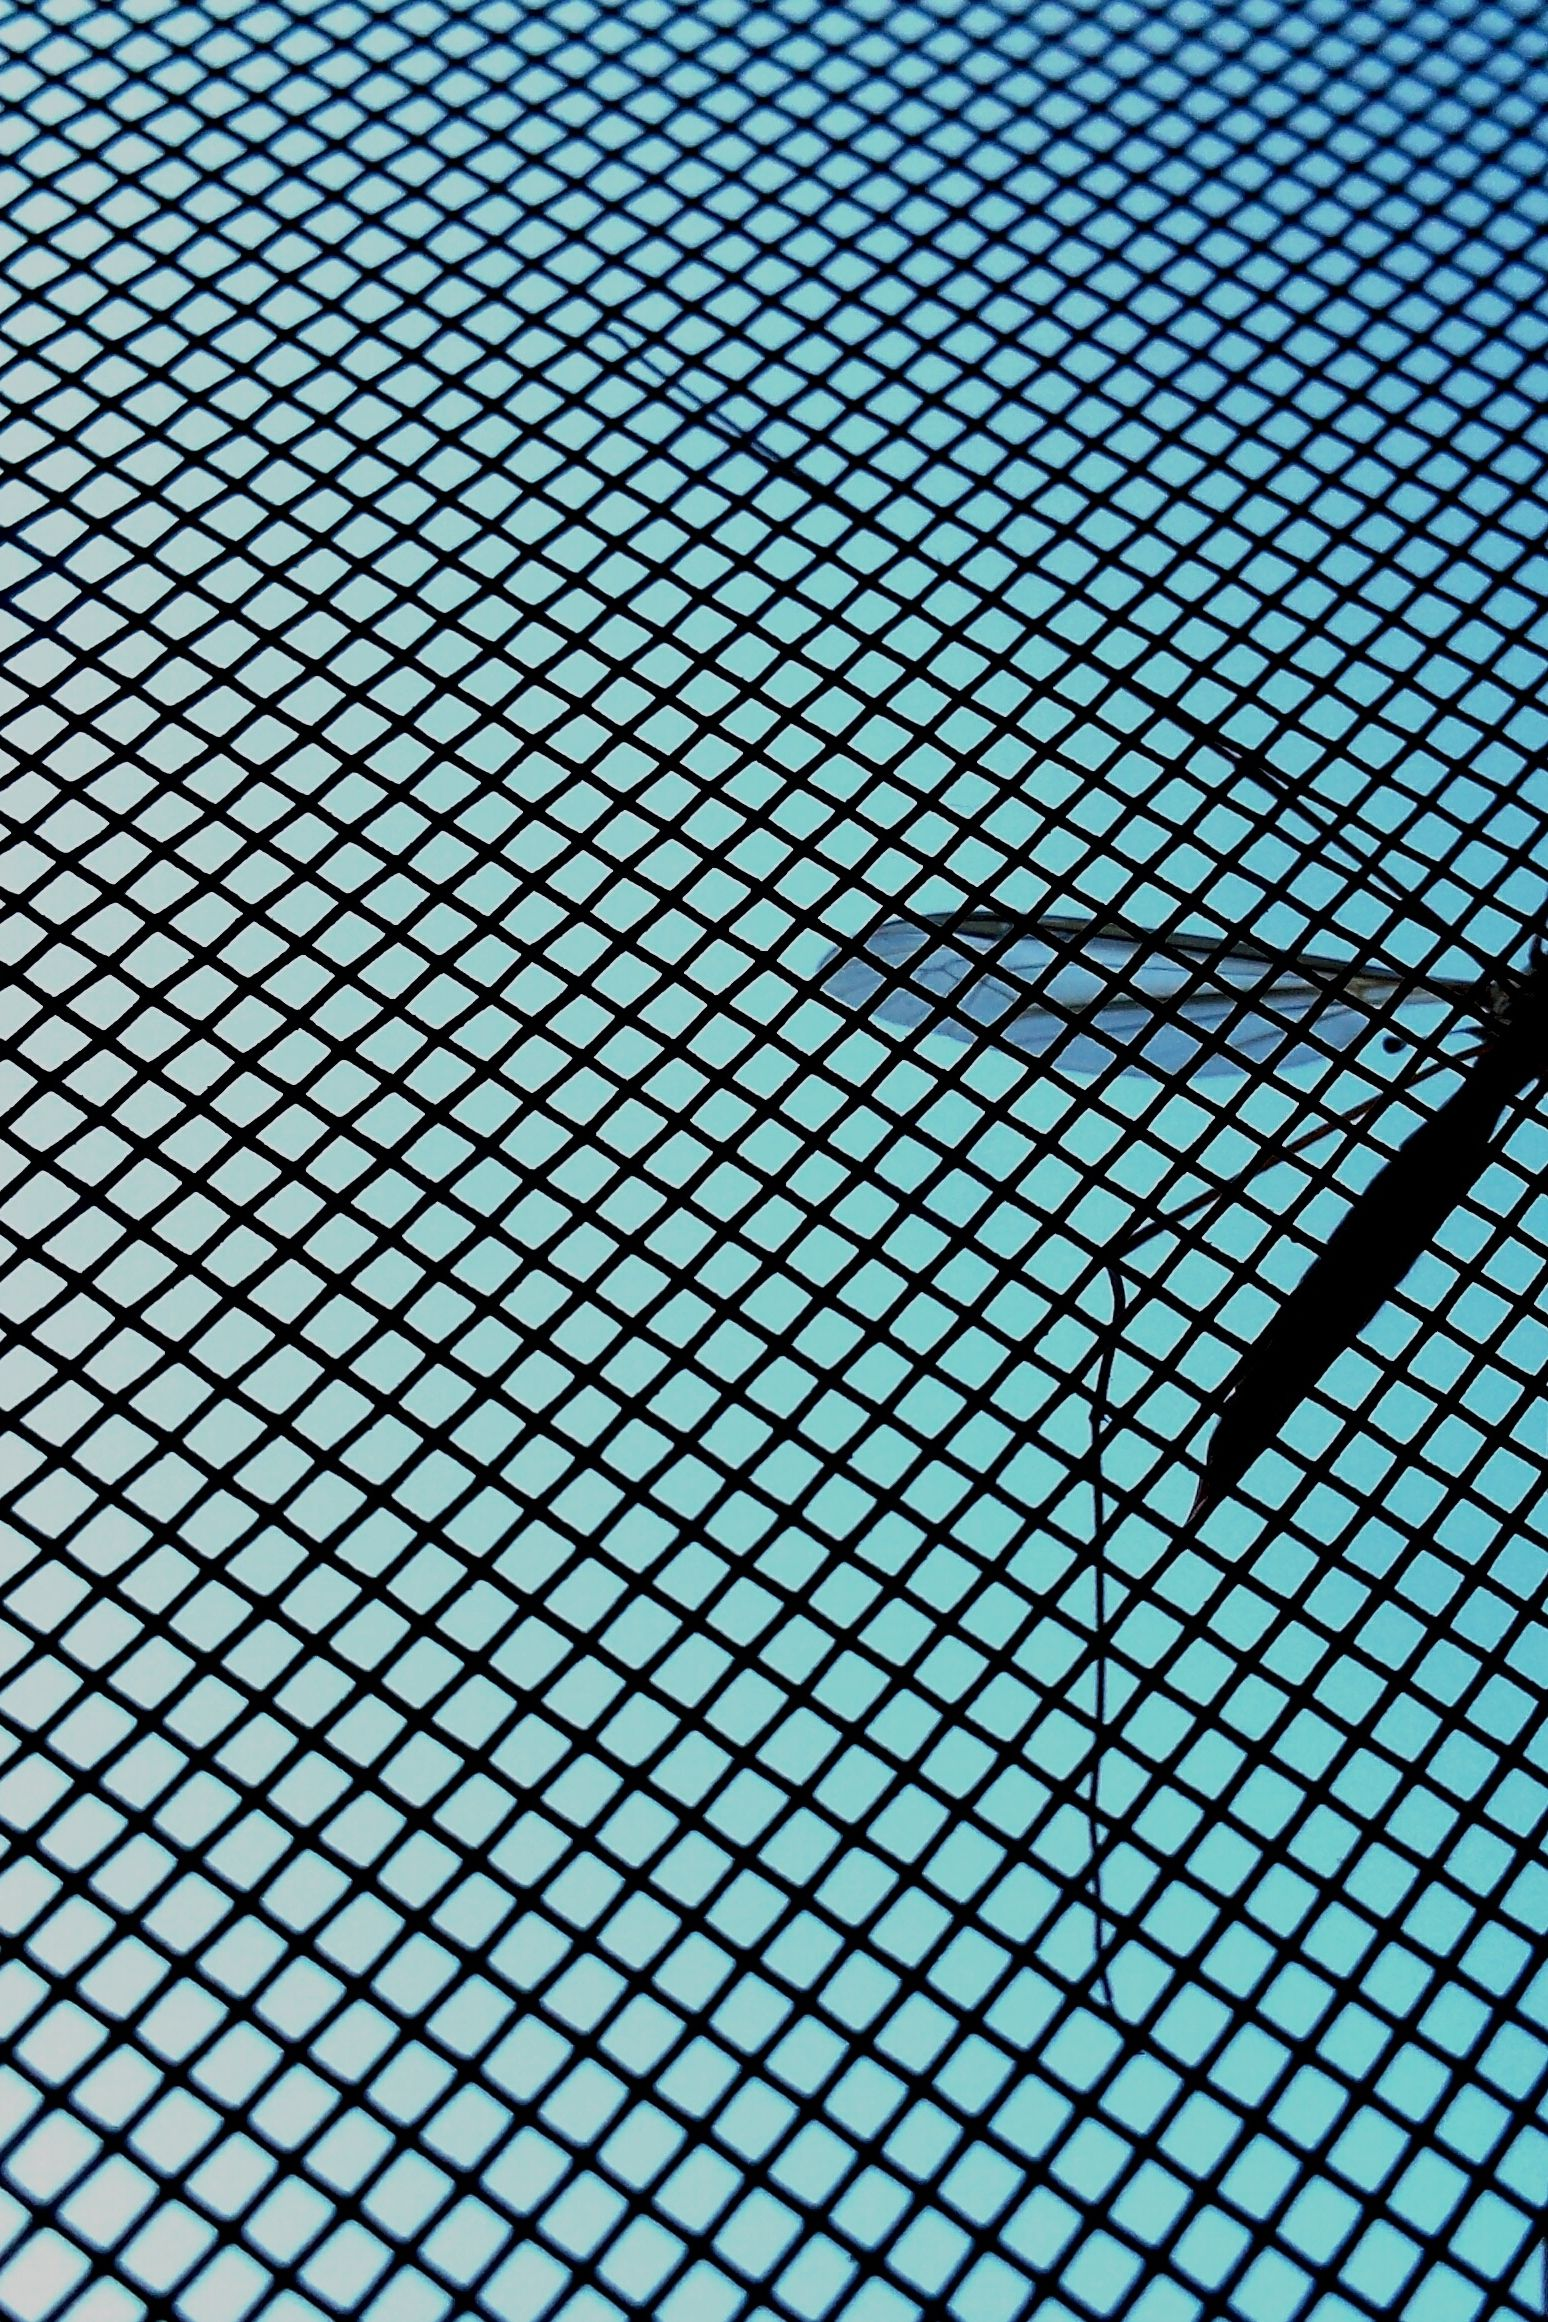 mosquito on a screen door